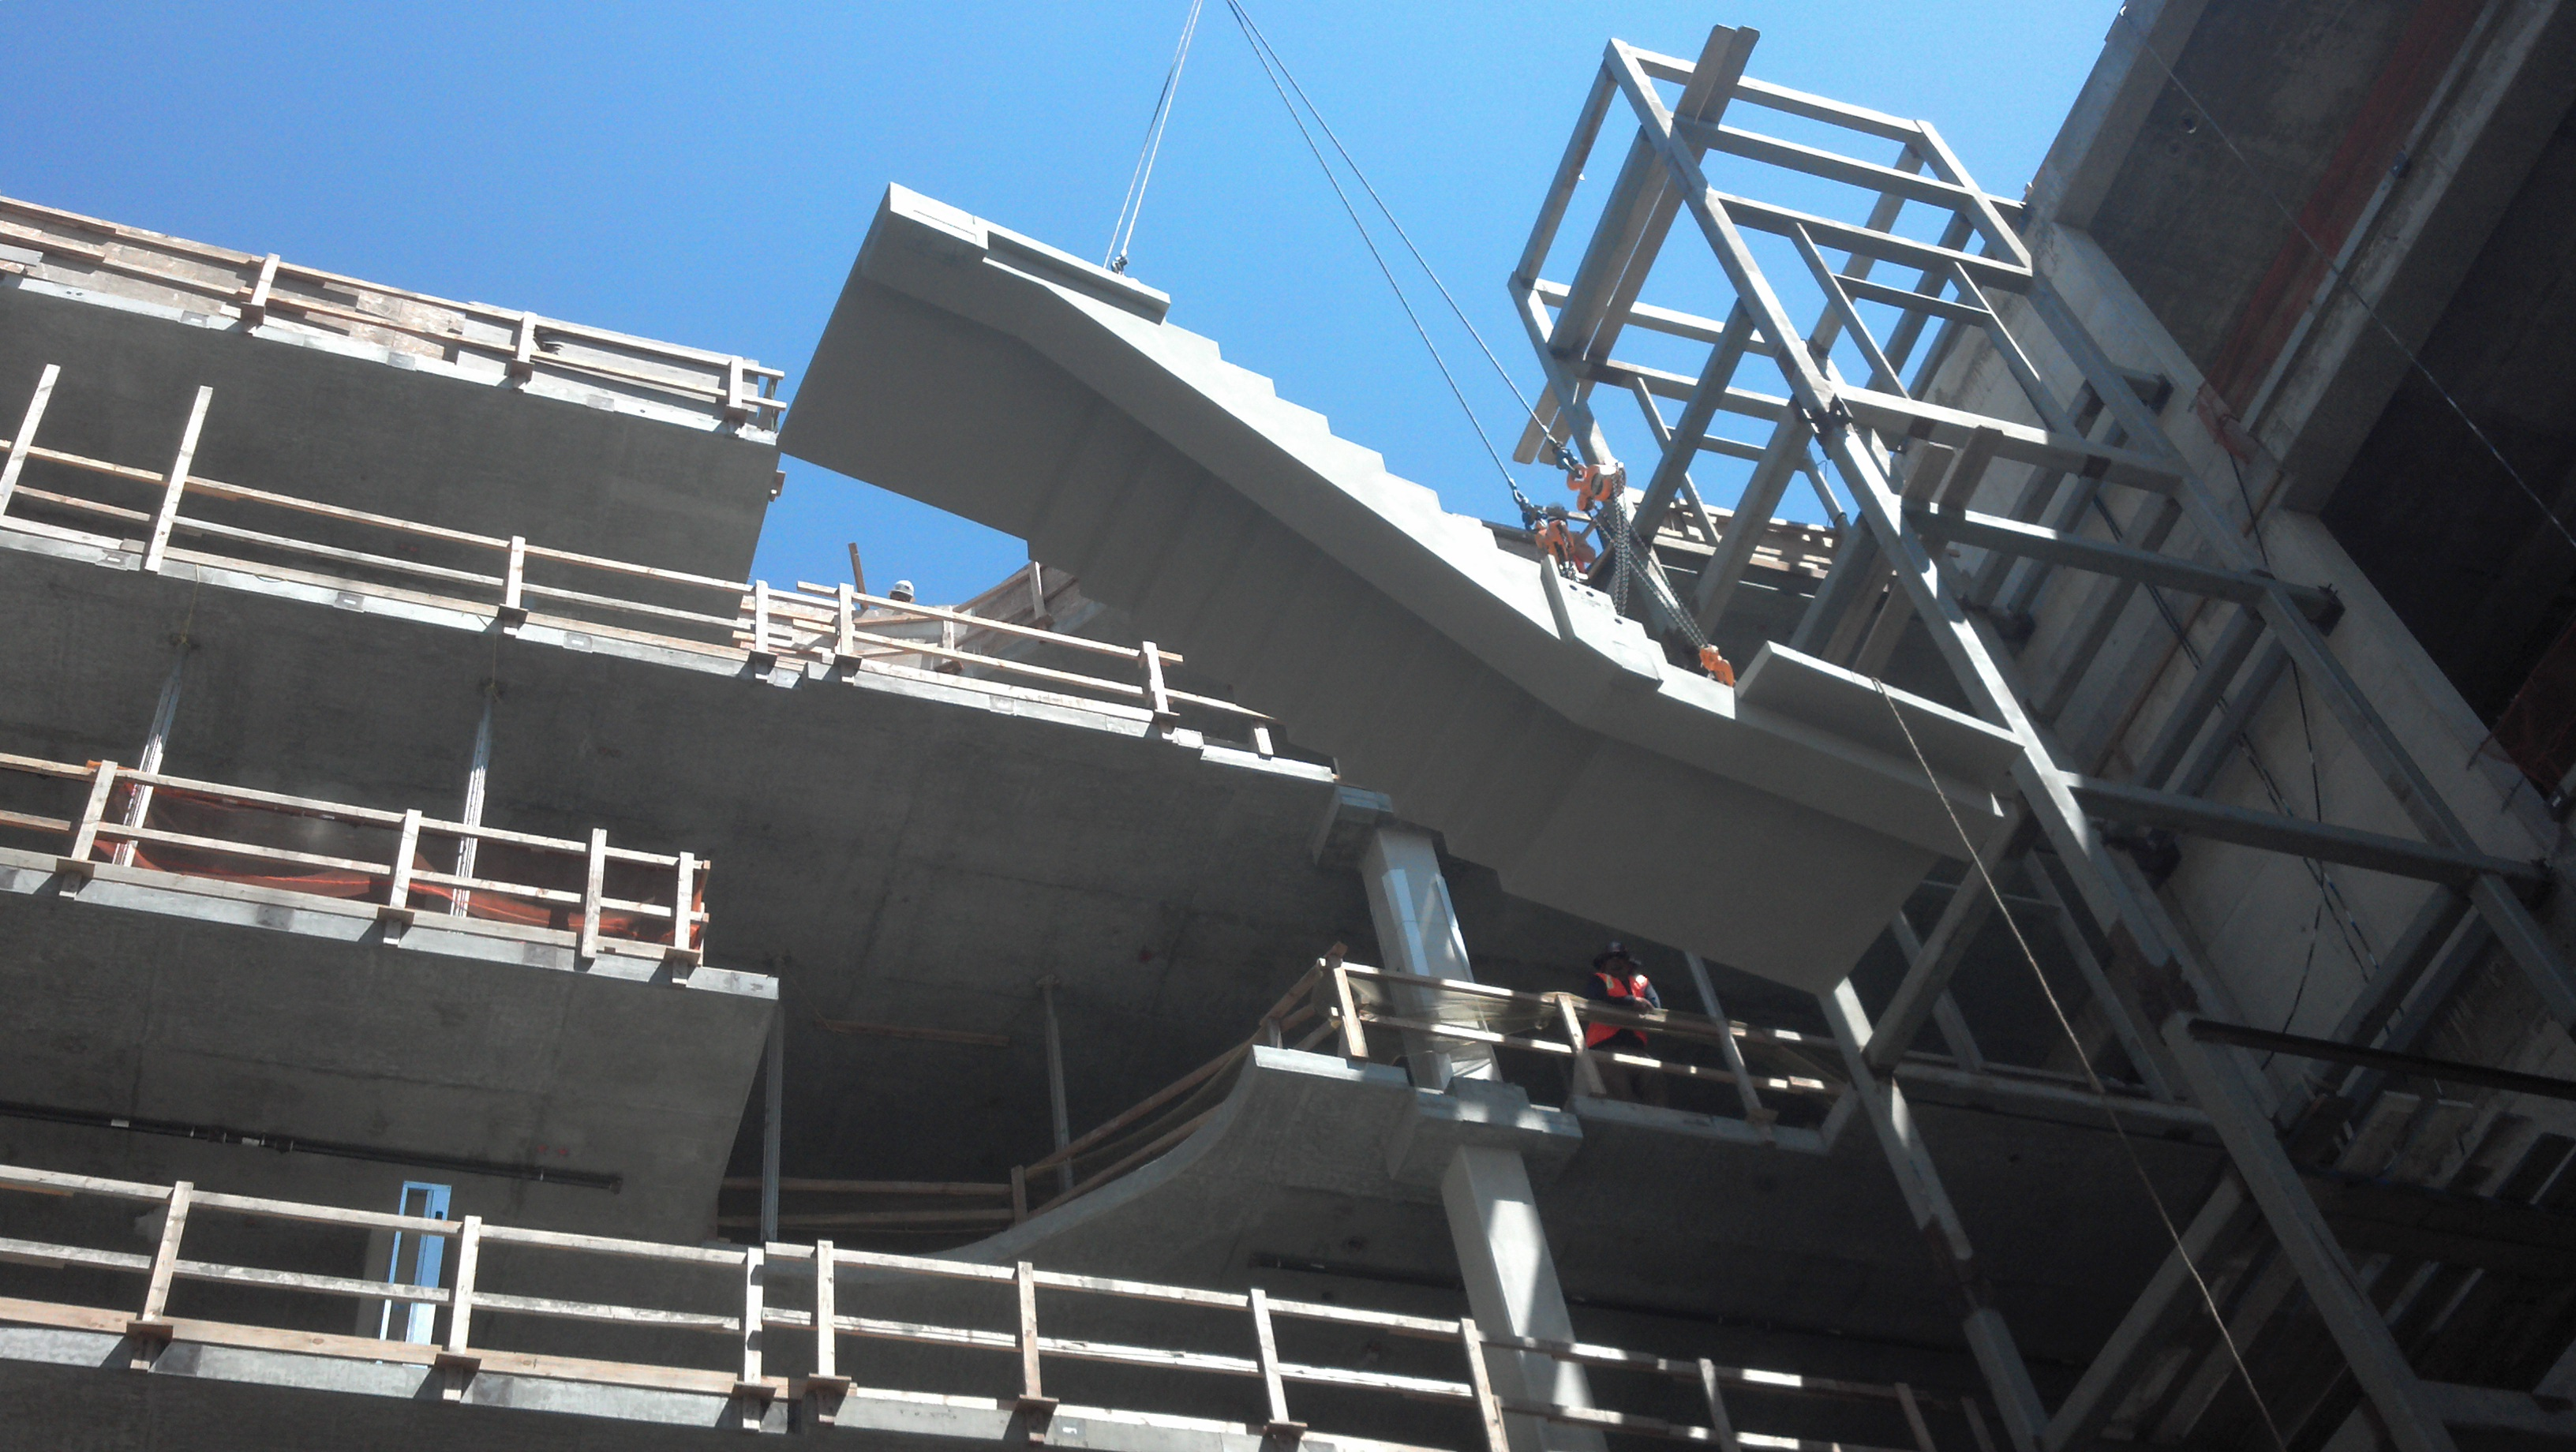 West Coast Auto Sales >> Precast Concrete Supplier Los Angeles, California - Coreslab Structures :Coreslab Structures